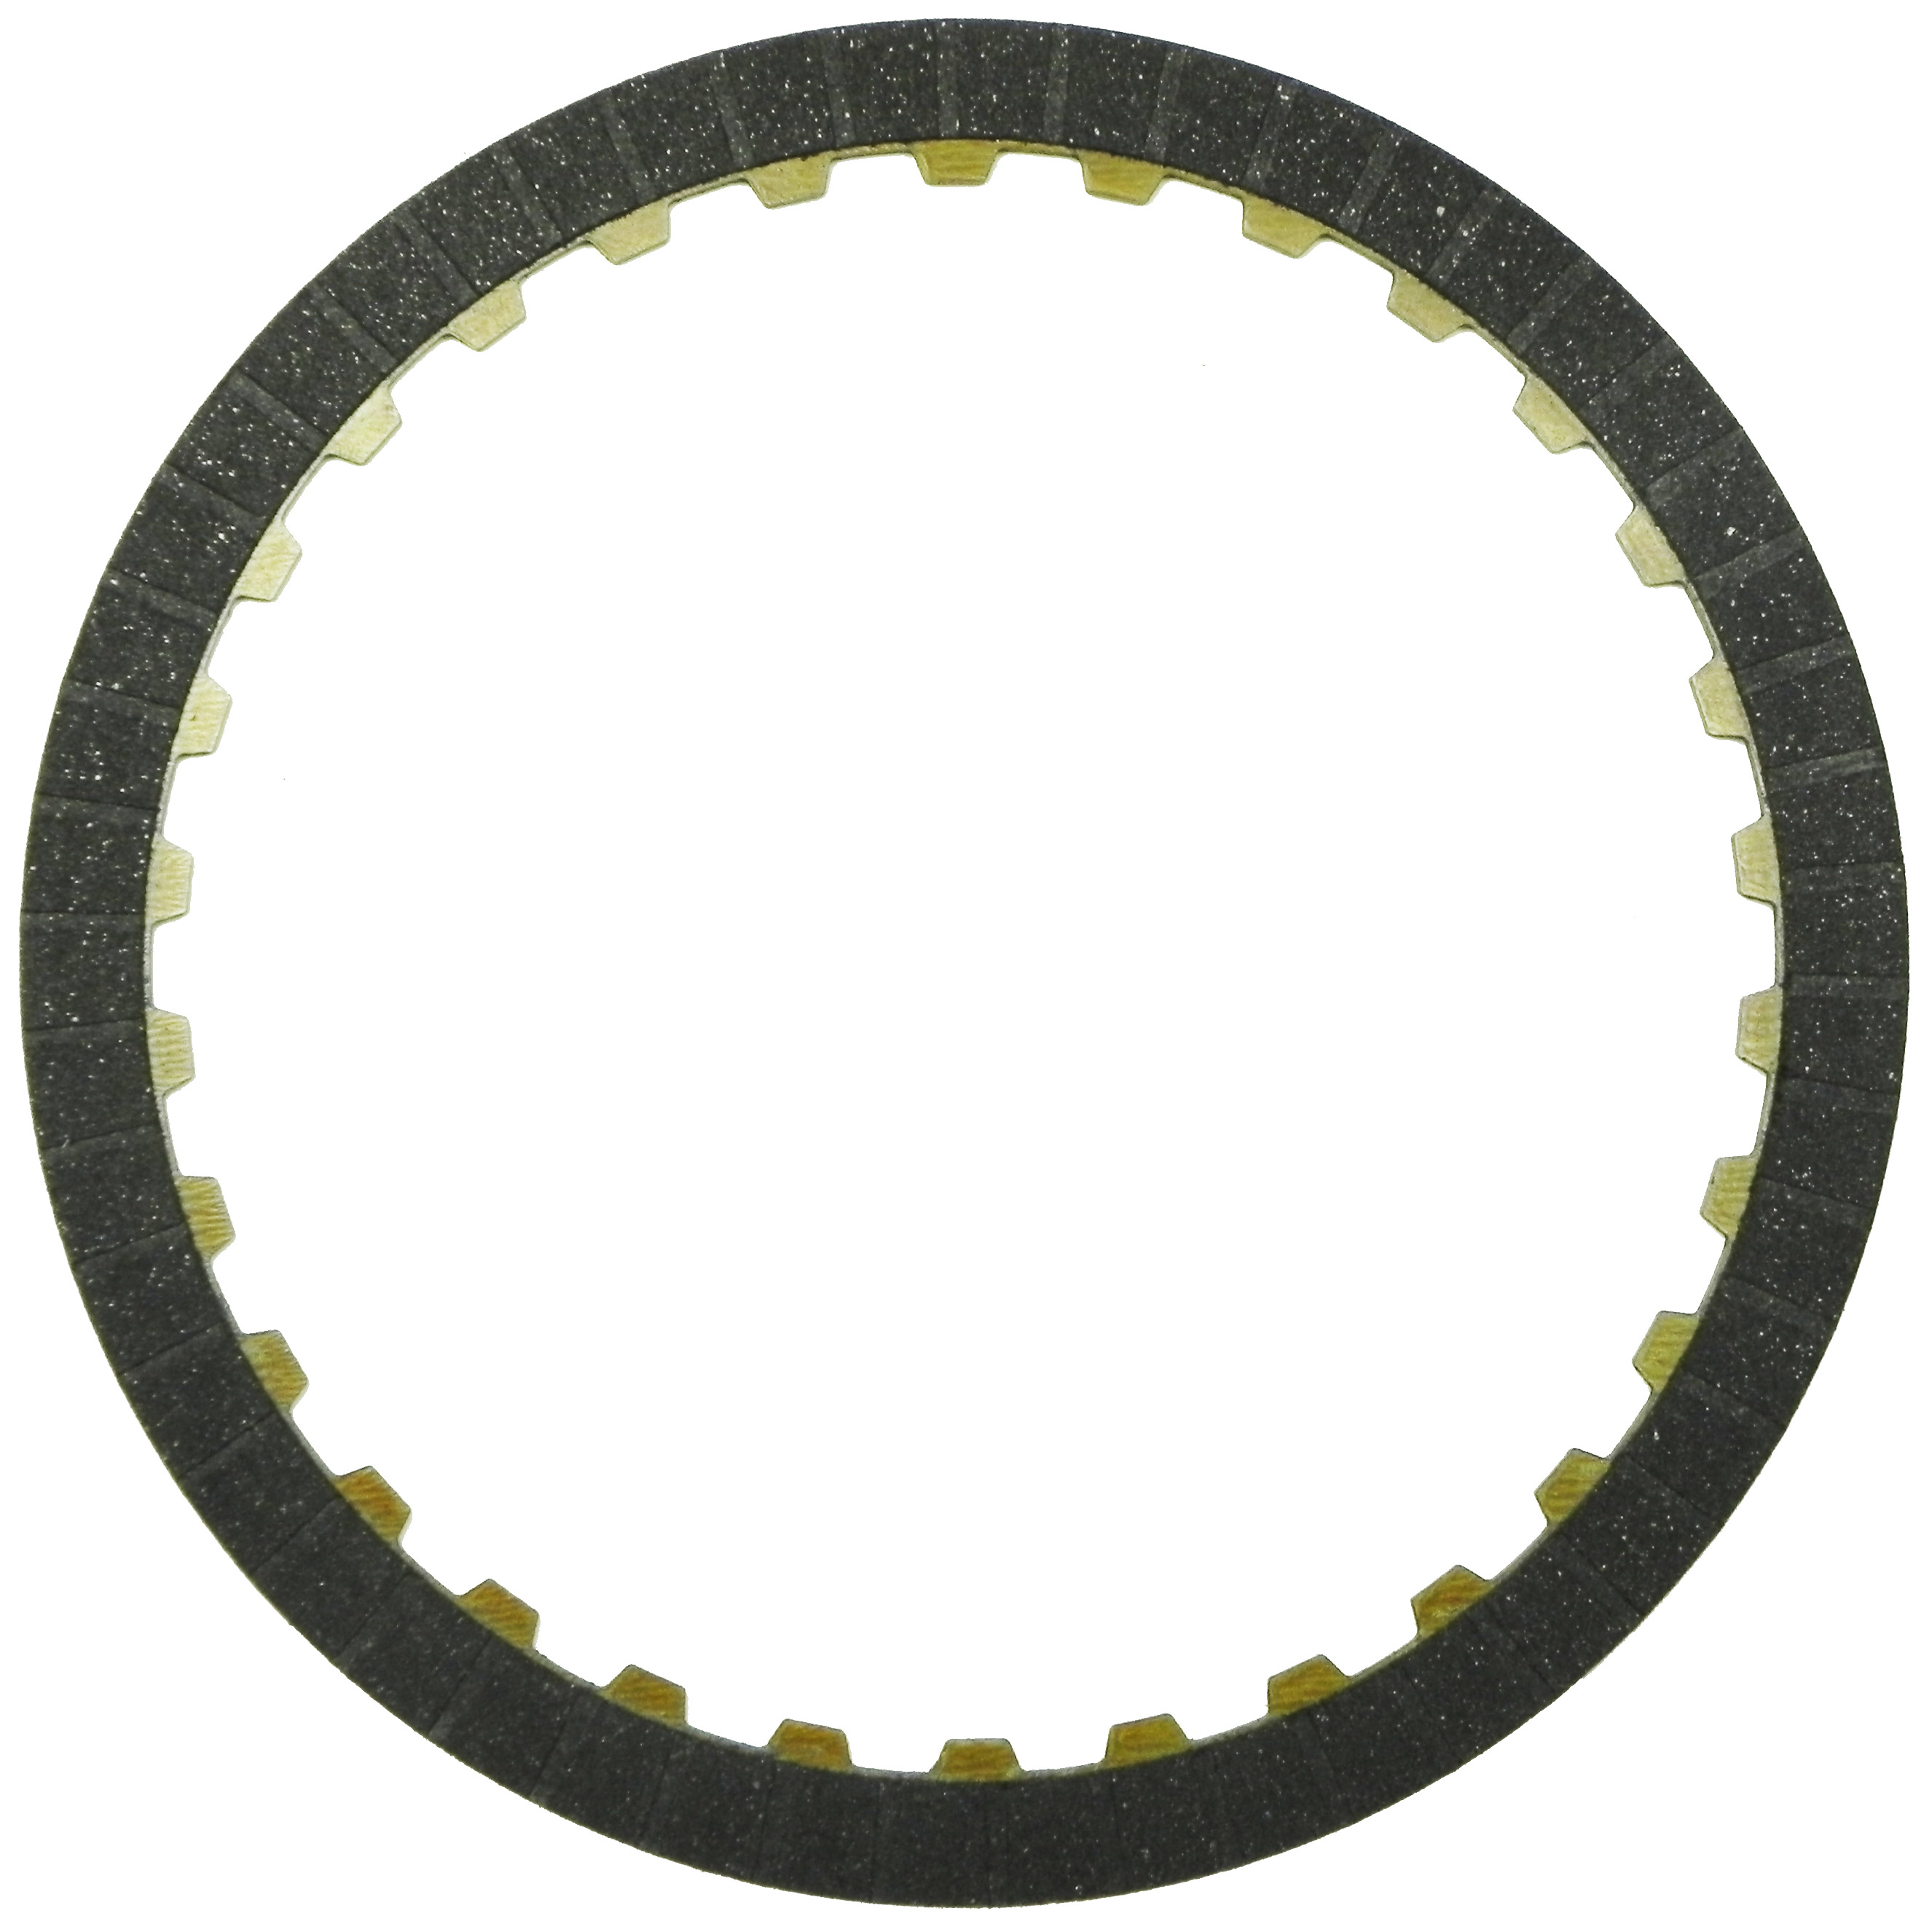 R560630 | 2009-ON Friction Clutch Plate High Energy 3, 5, Reverse Single Sided, ID Spline High Energy